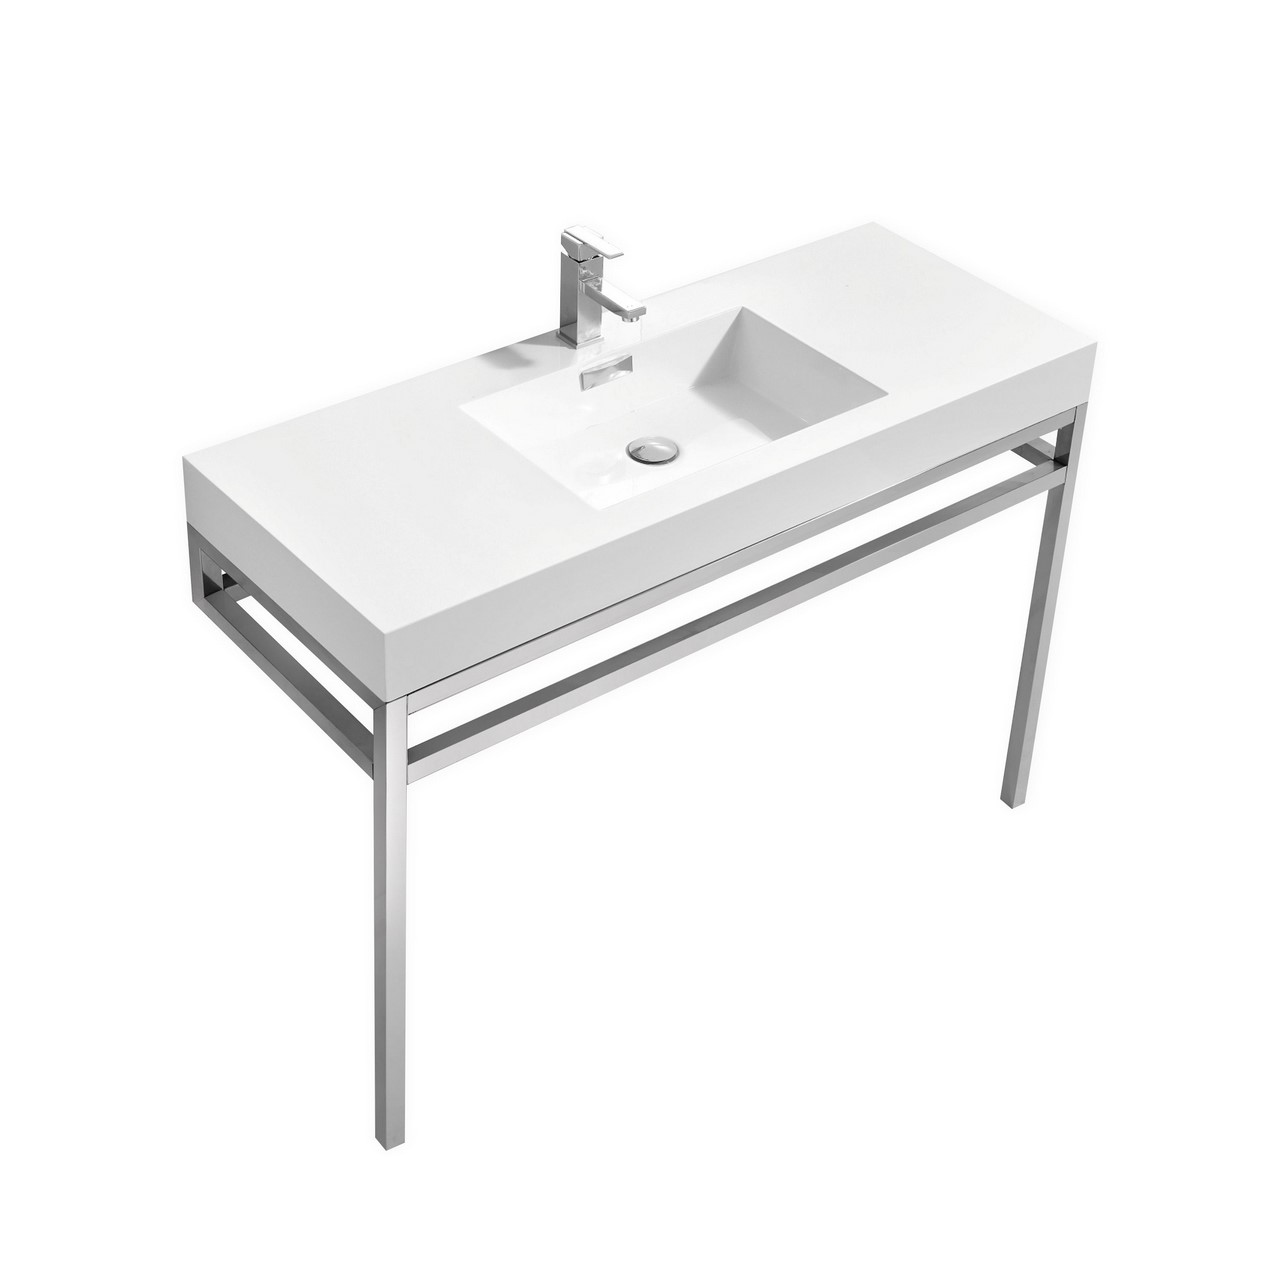 Haus 48 Quot Stainless Steel Console W White Acrylic Sink